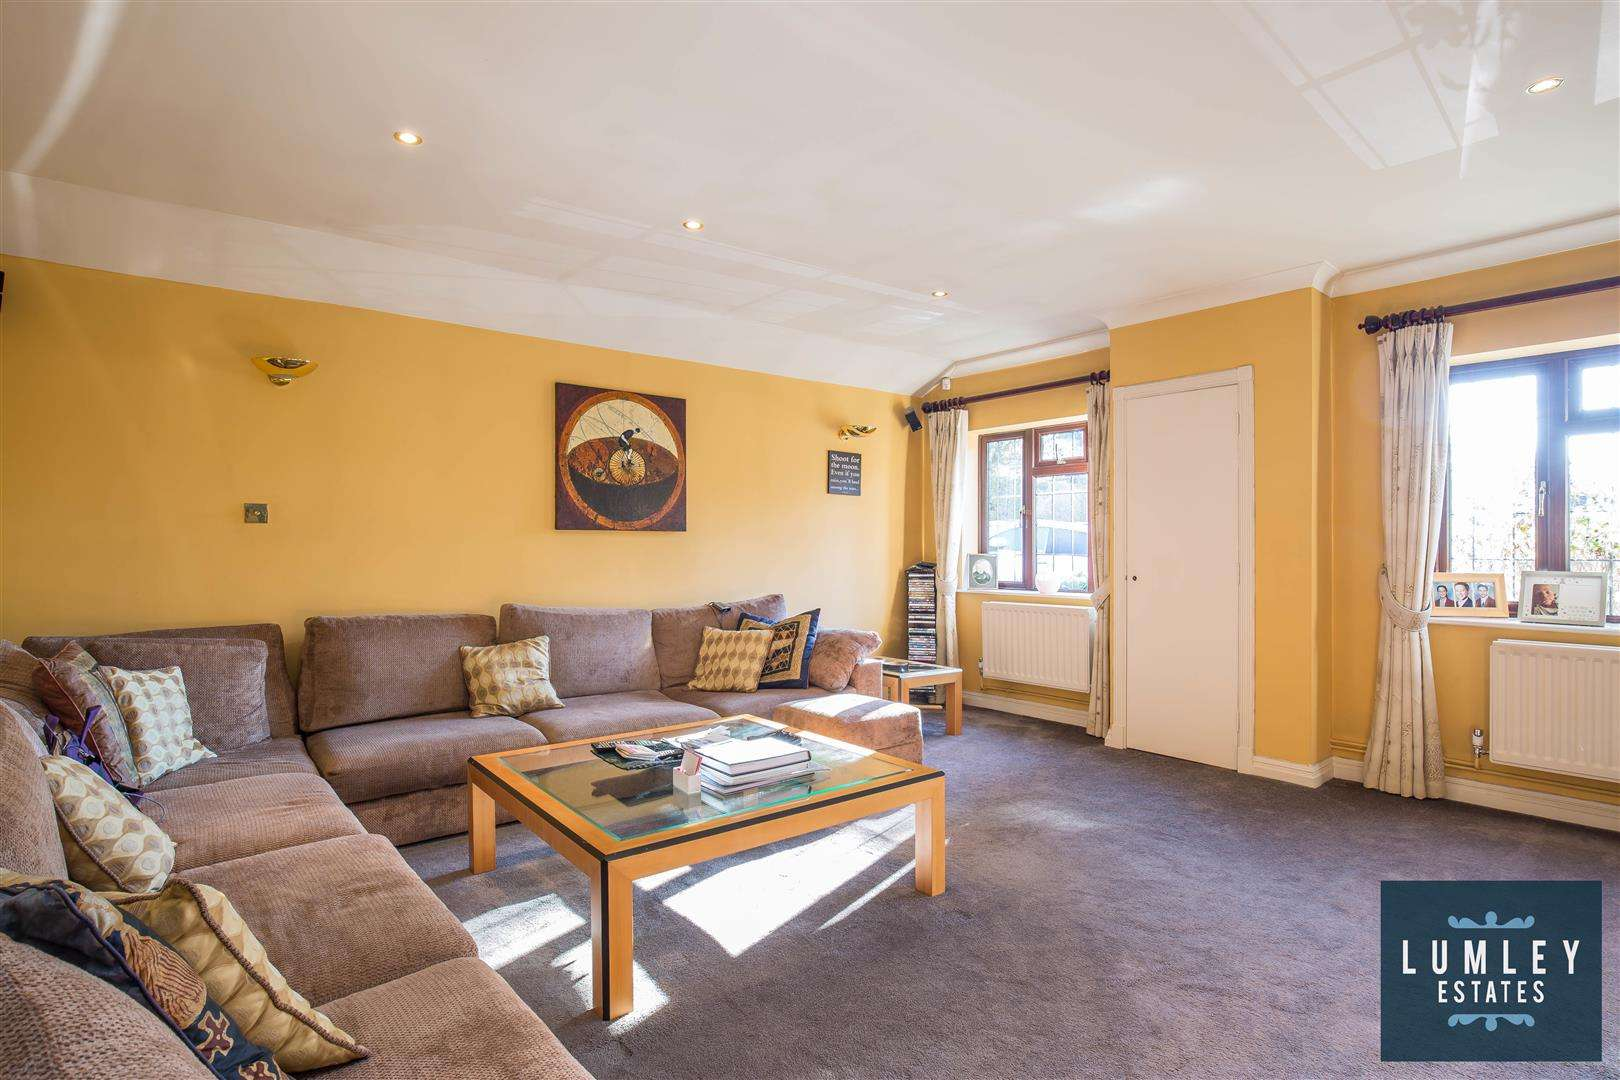 6 bed to rent - (Property Image 2)